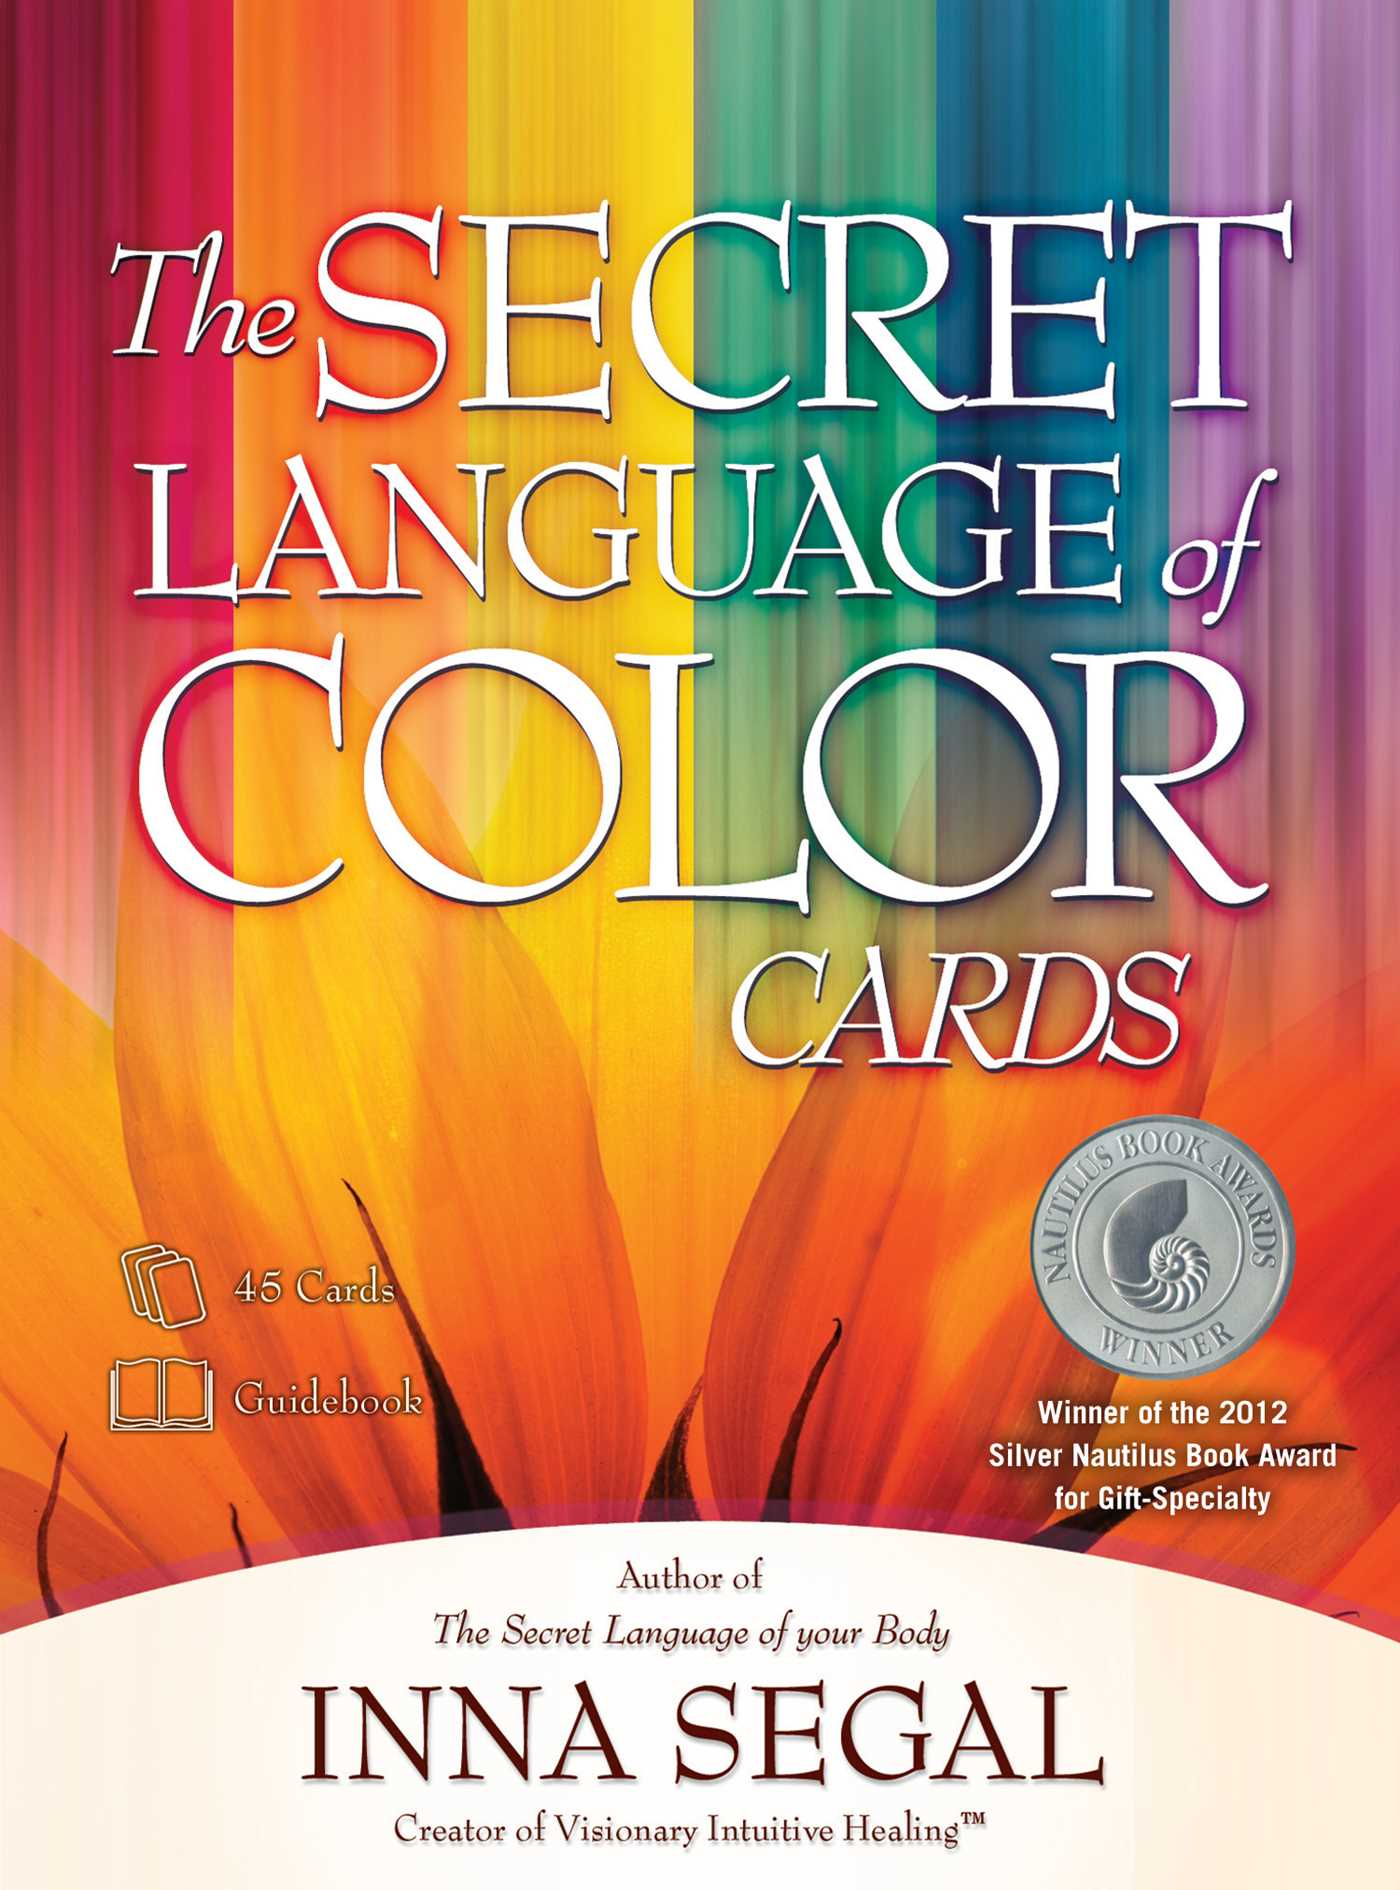 The-secret-language-of-color-cards-9781582703268_hr